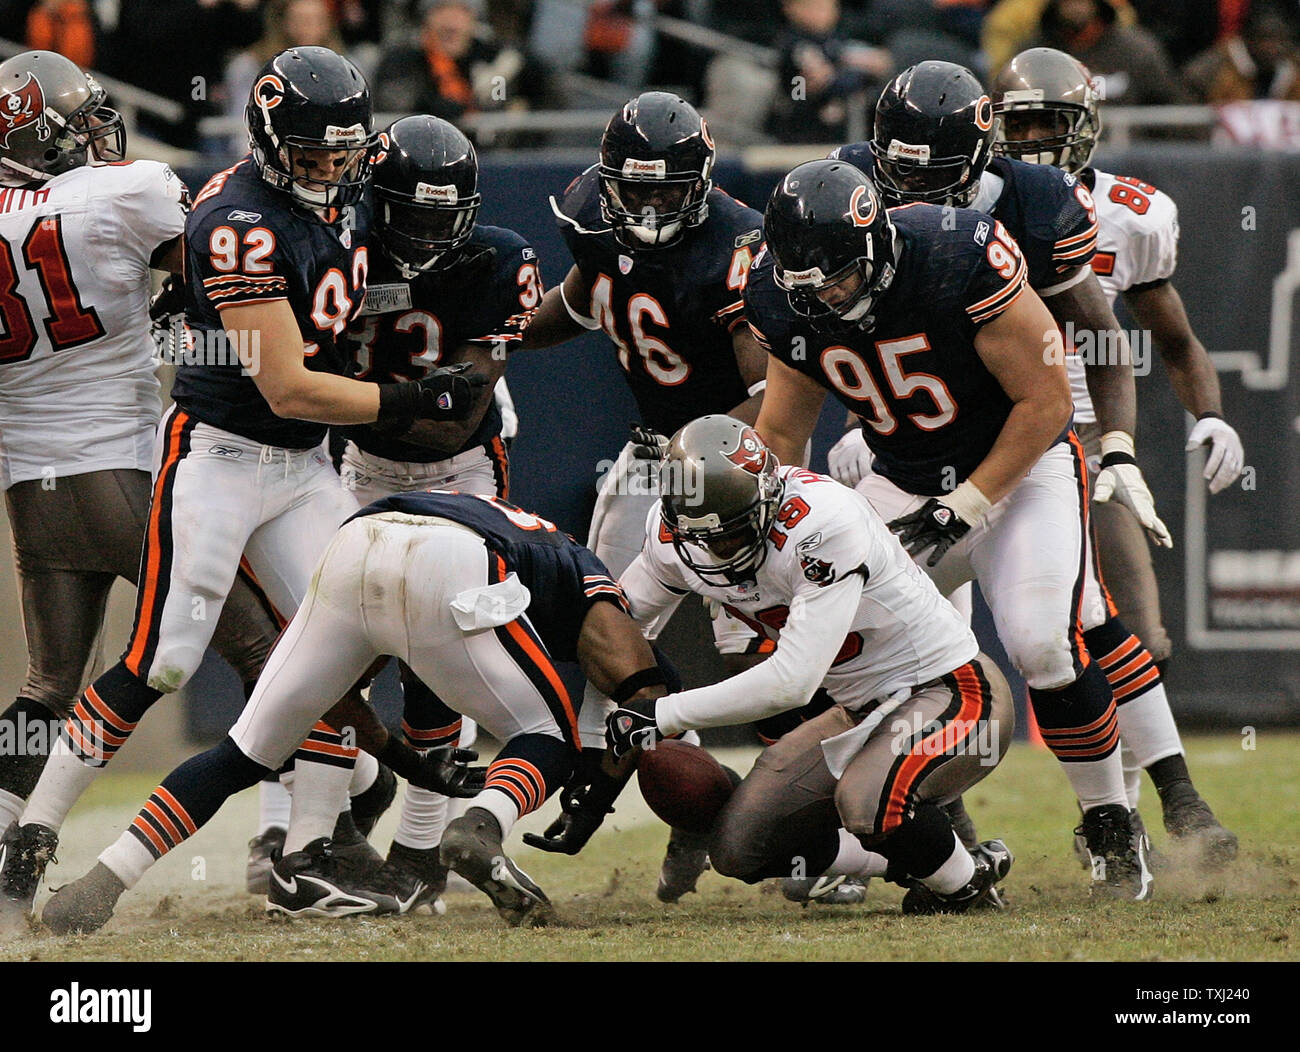 Chicago Bears, Danieal Manning, bottom left, Hunter Hillenmeyer (92), Charles Tillman (33), Chris Harris (46), Ian Scott (95) and Alex Brown, back right, and Tampa Bay Buccaneers' Ike Hilliard (19) try to recover Alex Smith's fumble during overtime at Soldier Field in Chicago on December 17, 2006. Ian Scott ended up with the ball. The Bears won 34-31 in overtime. (UPI Photo/Brian Kersey) Stock Photo